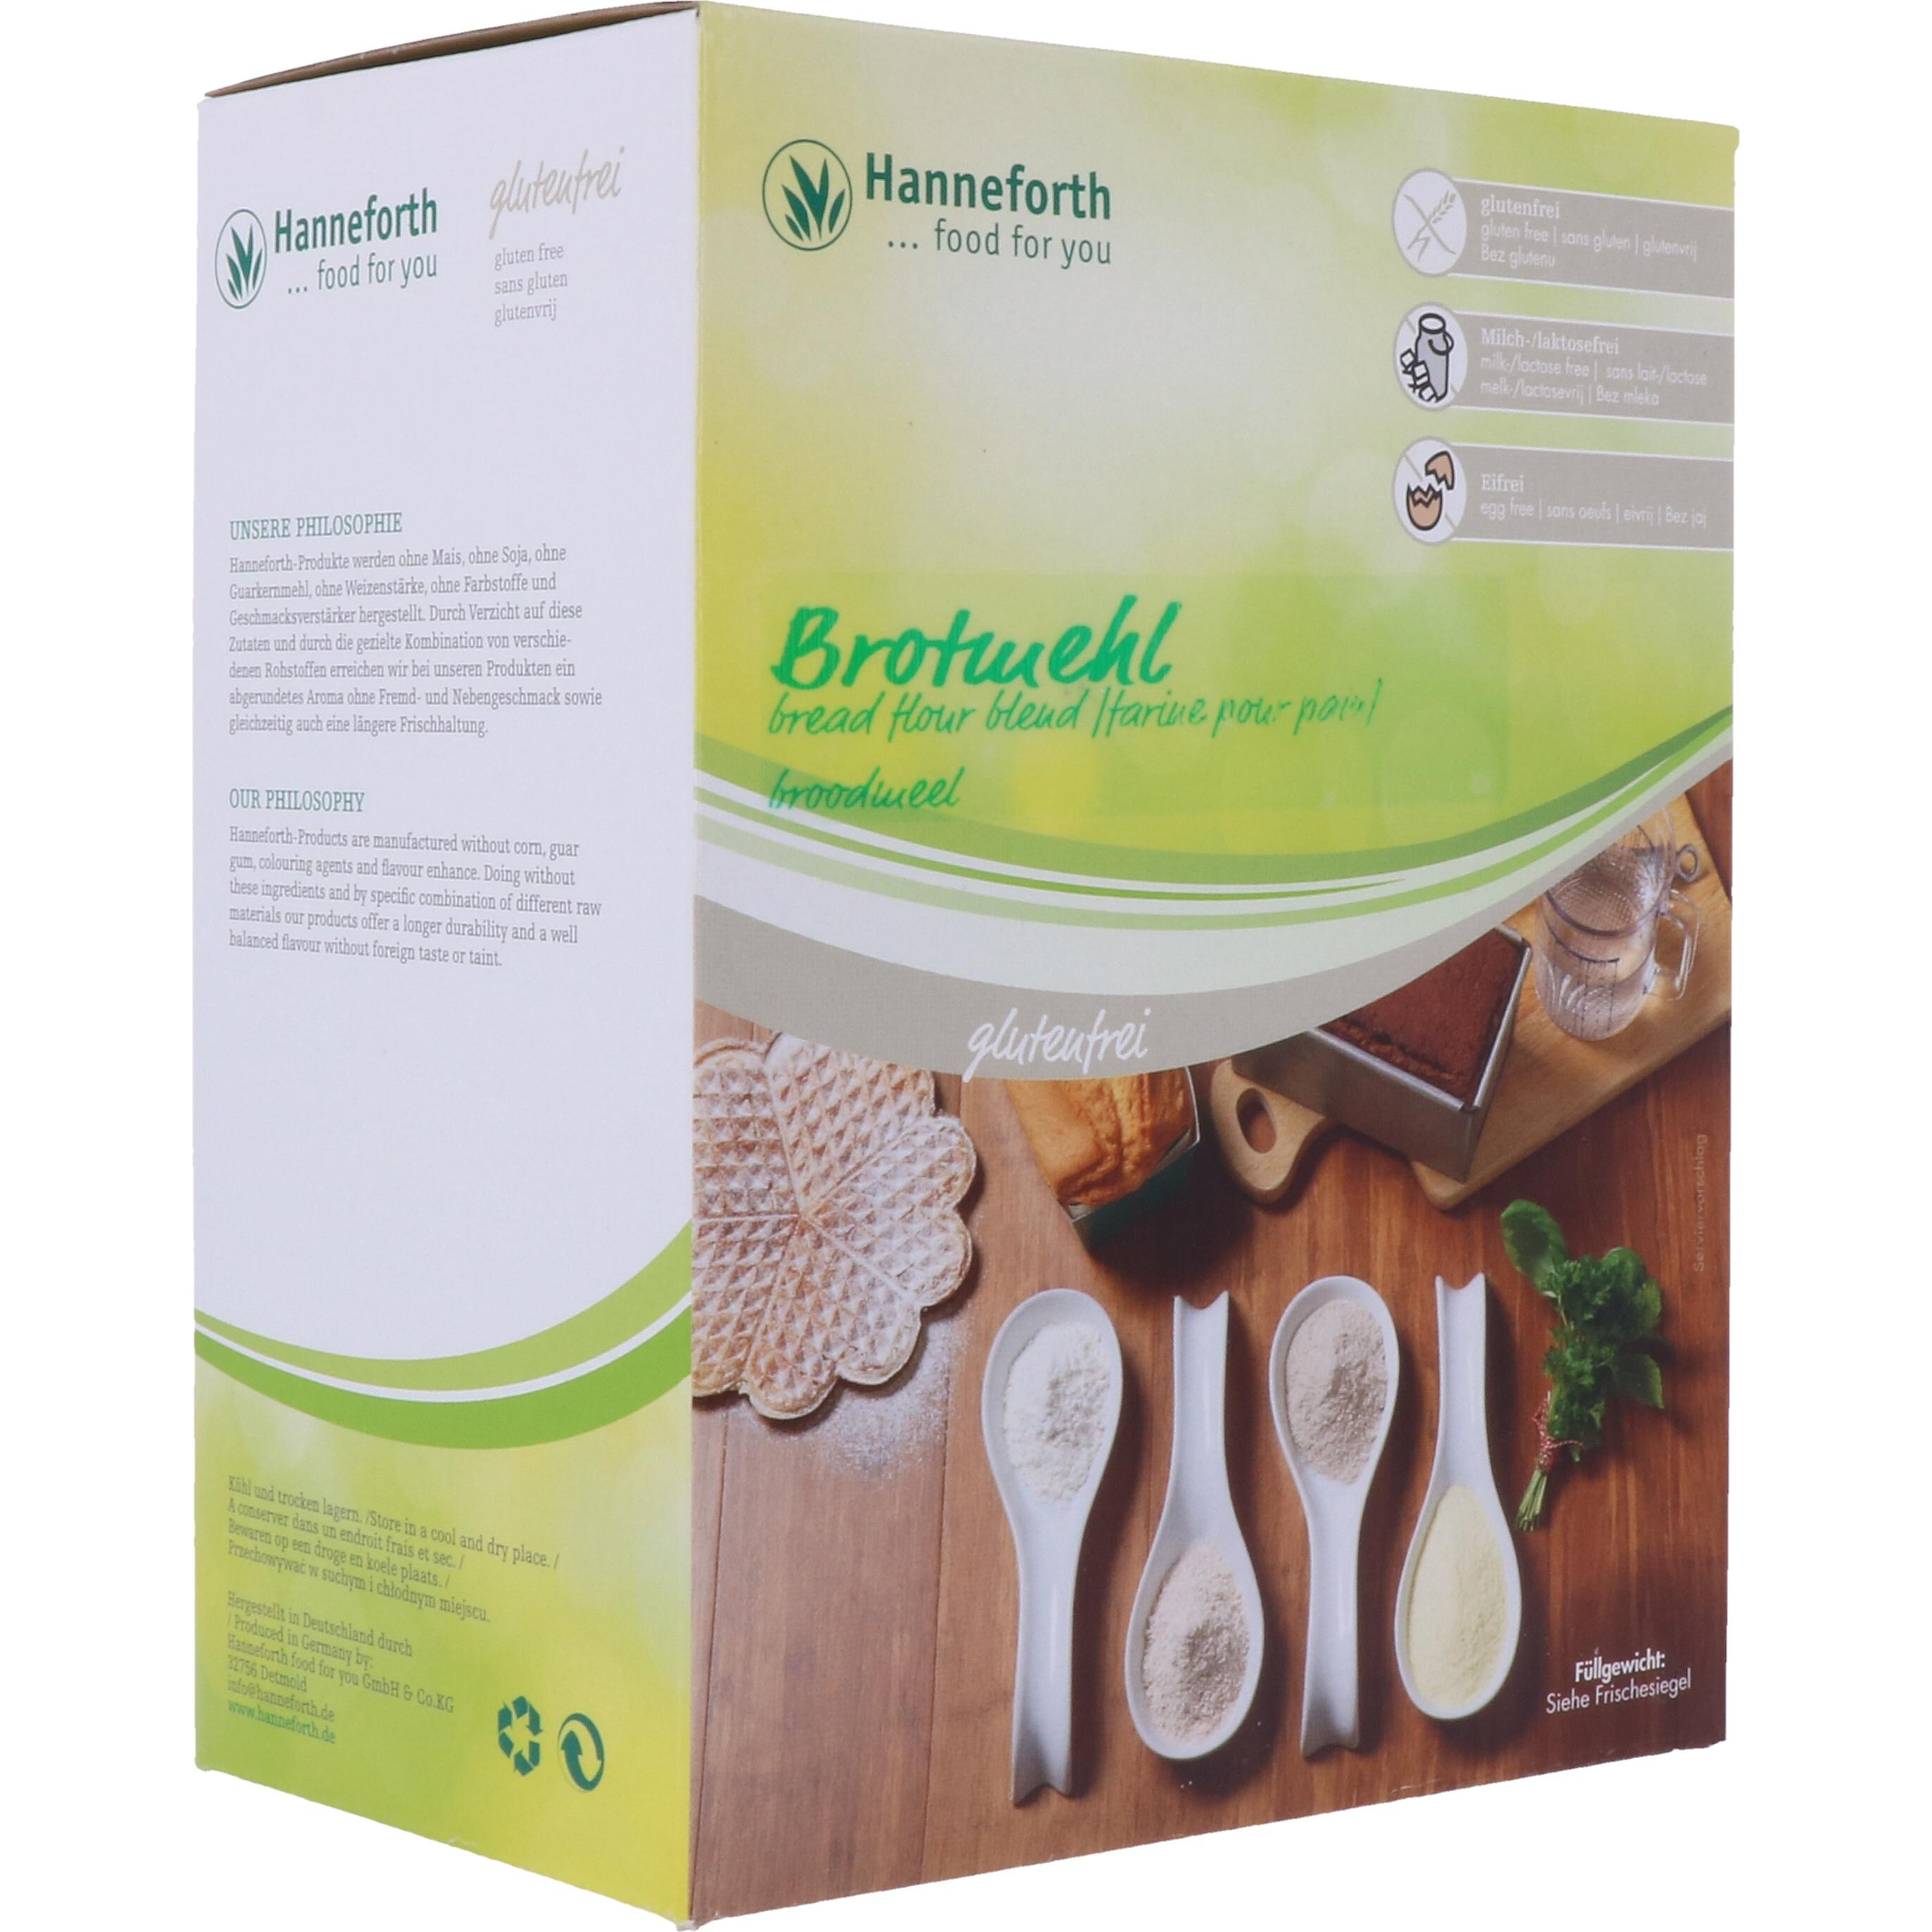 Hanneforth food for you Brotmehl 1,5kg